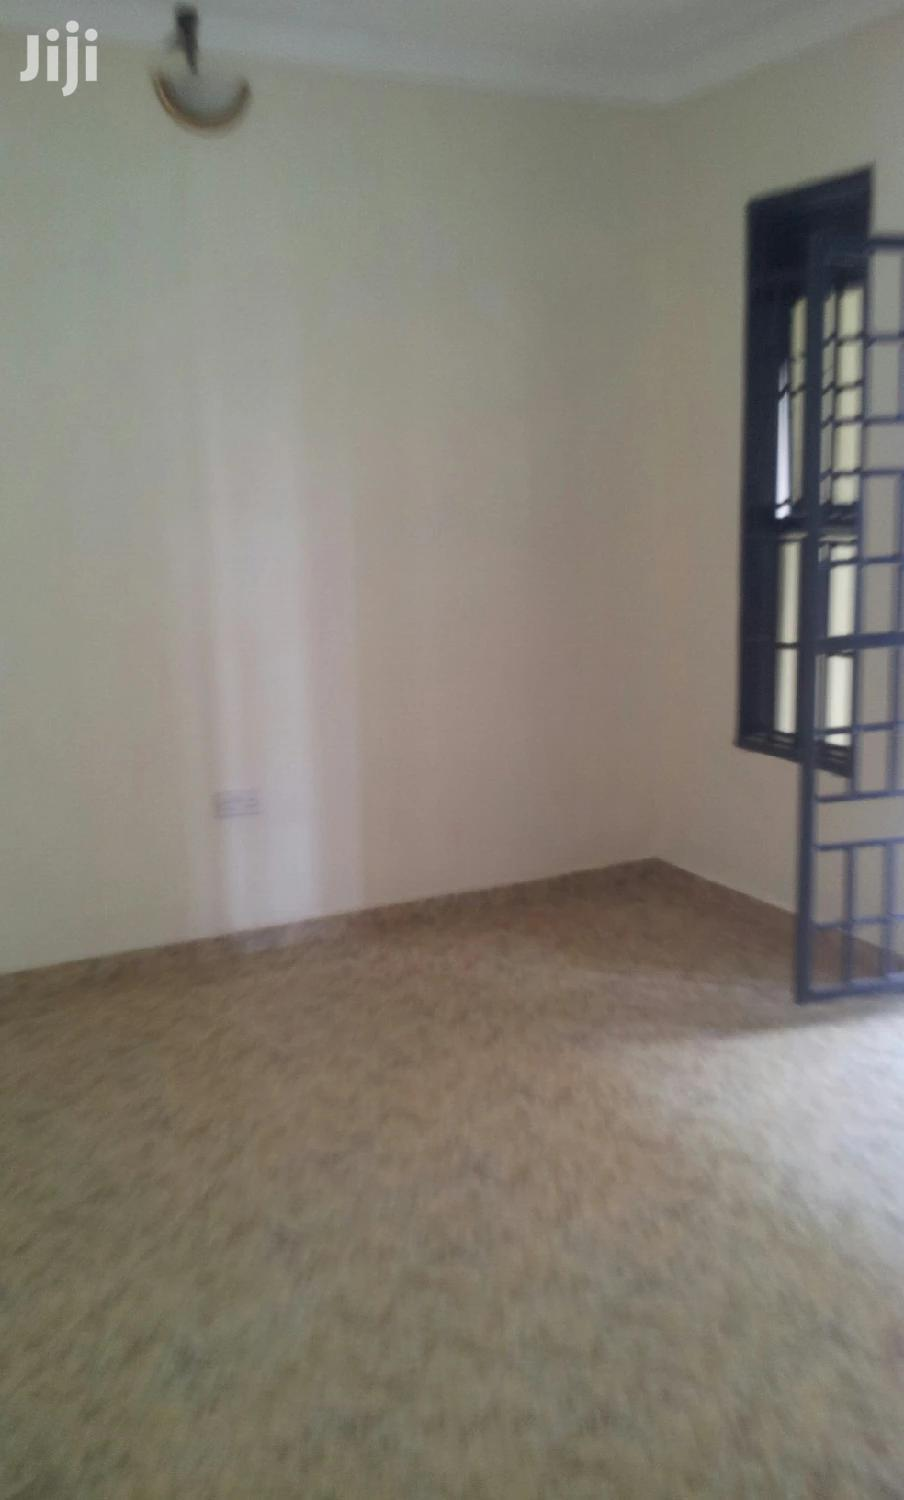 Apartment For Rent In Kyanja | Houses & Apartments For Rent for sale in Kampala, Central Region, Uganda